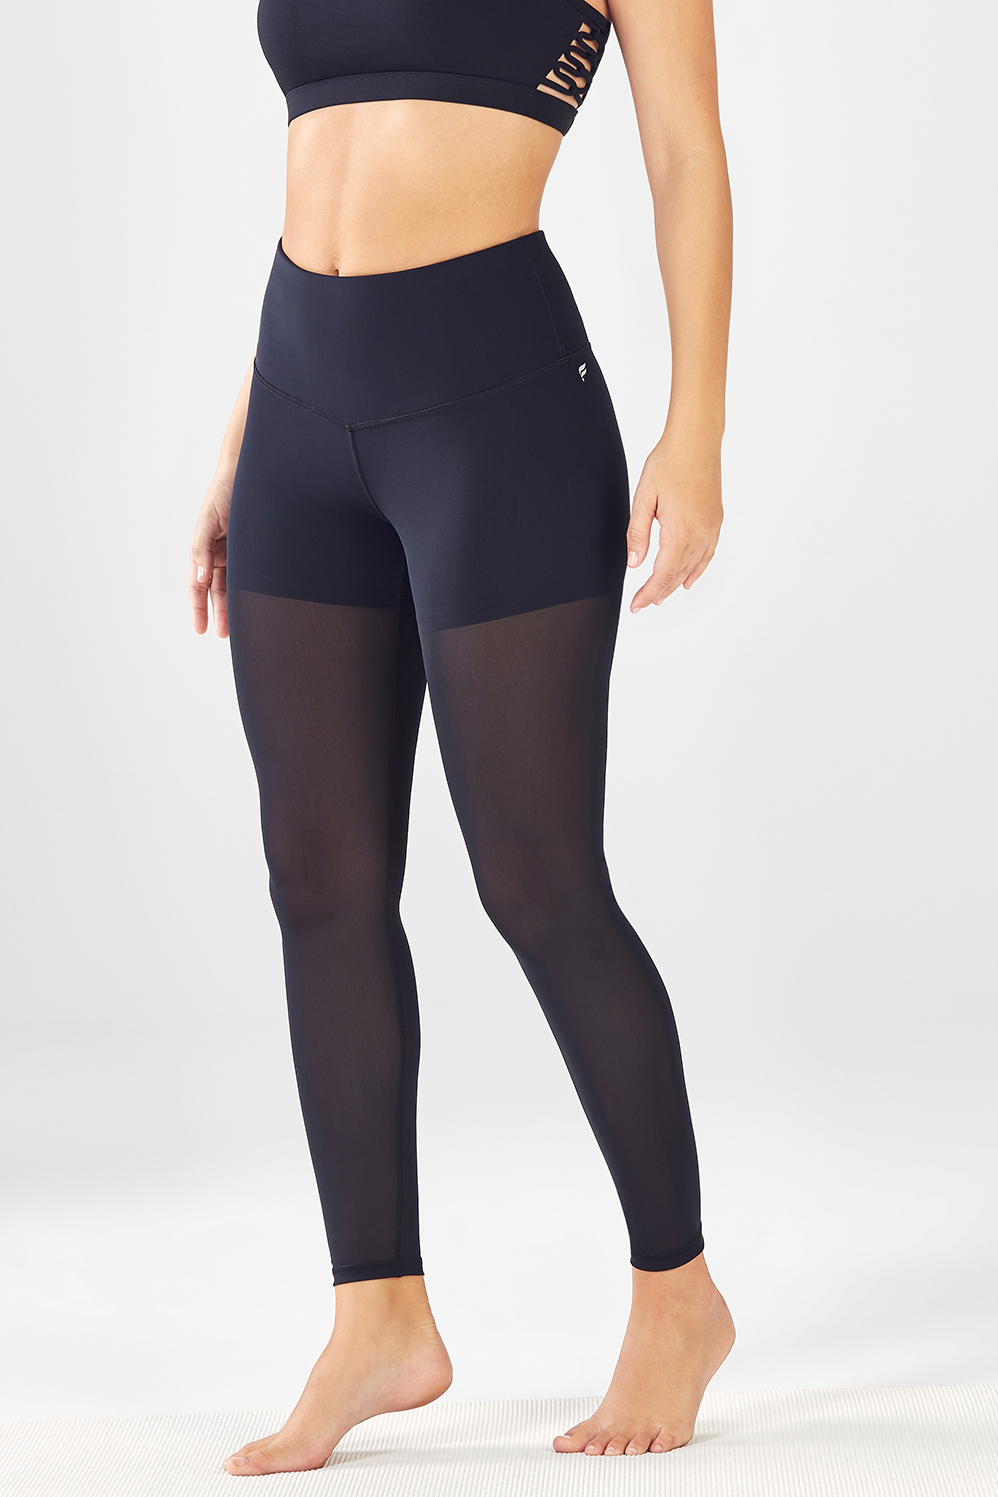 ff385358312ade High-Waisted Mesh PureLuxe Leggings - Fabletics